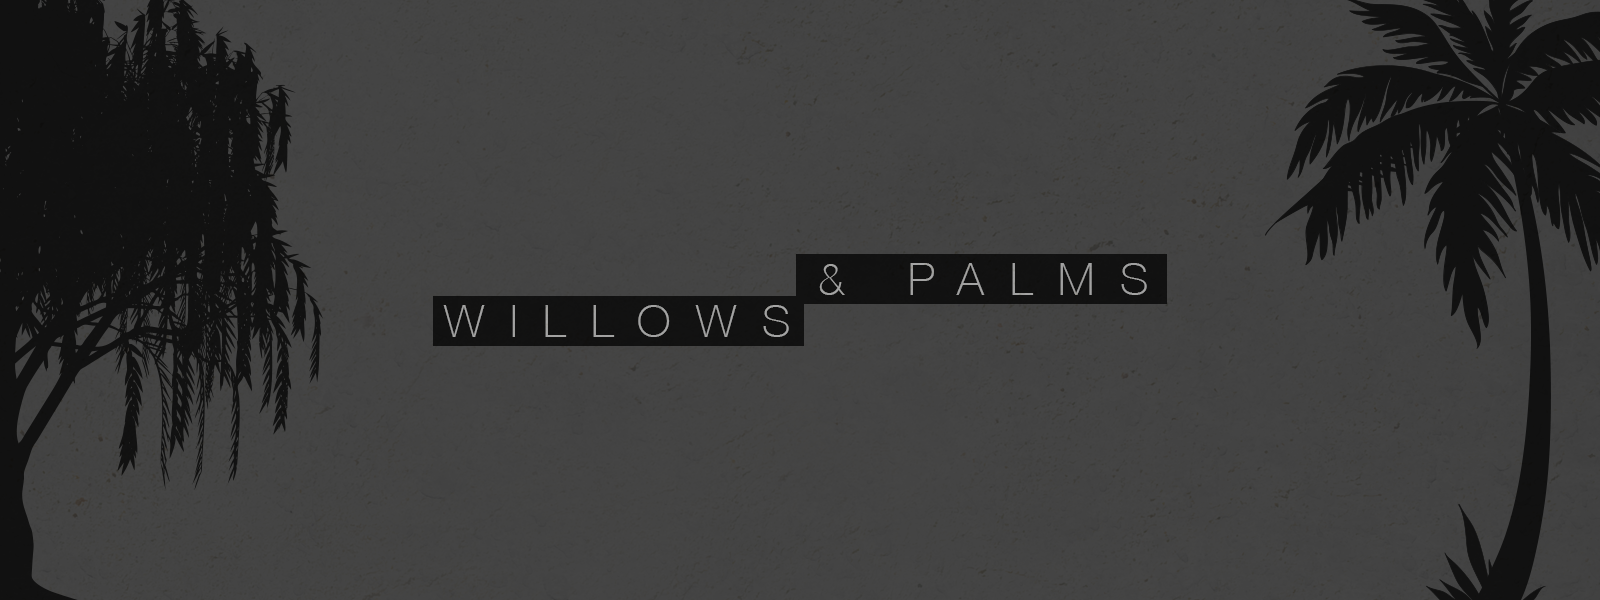 JFM-Hp-WillowsAndPalms